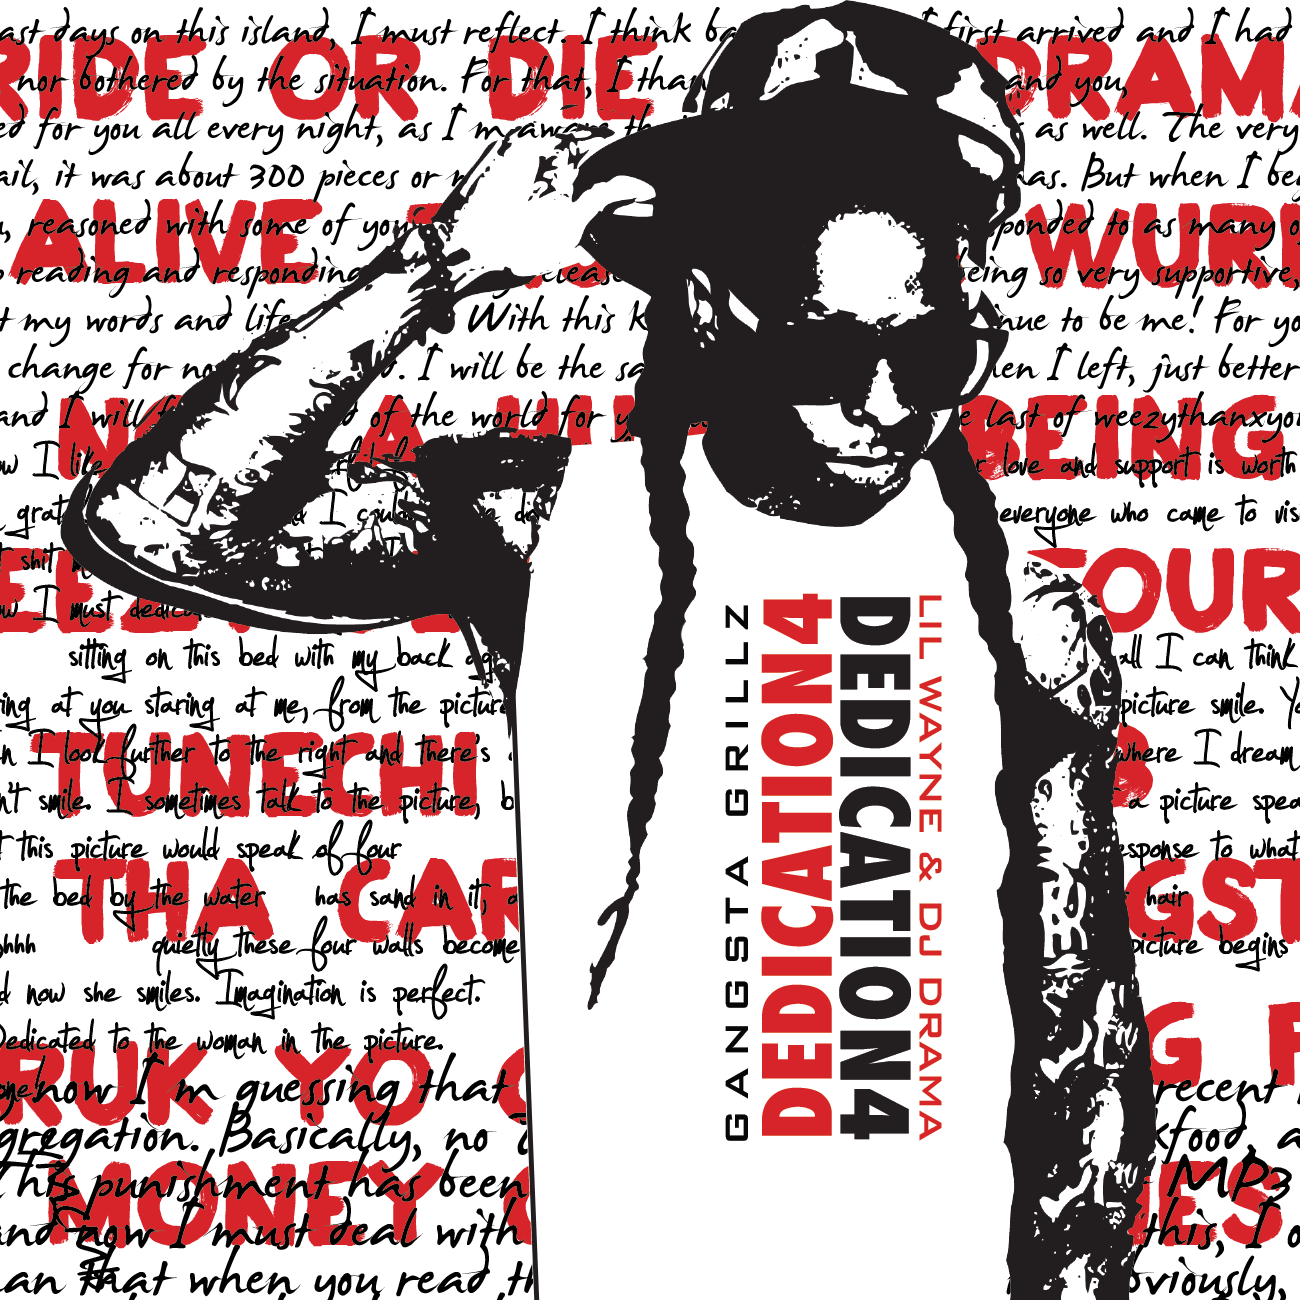 Lil Wayne Dedication 4 Free Album Download